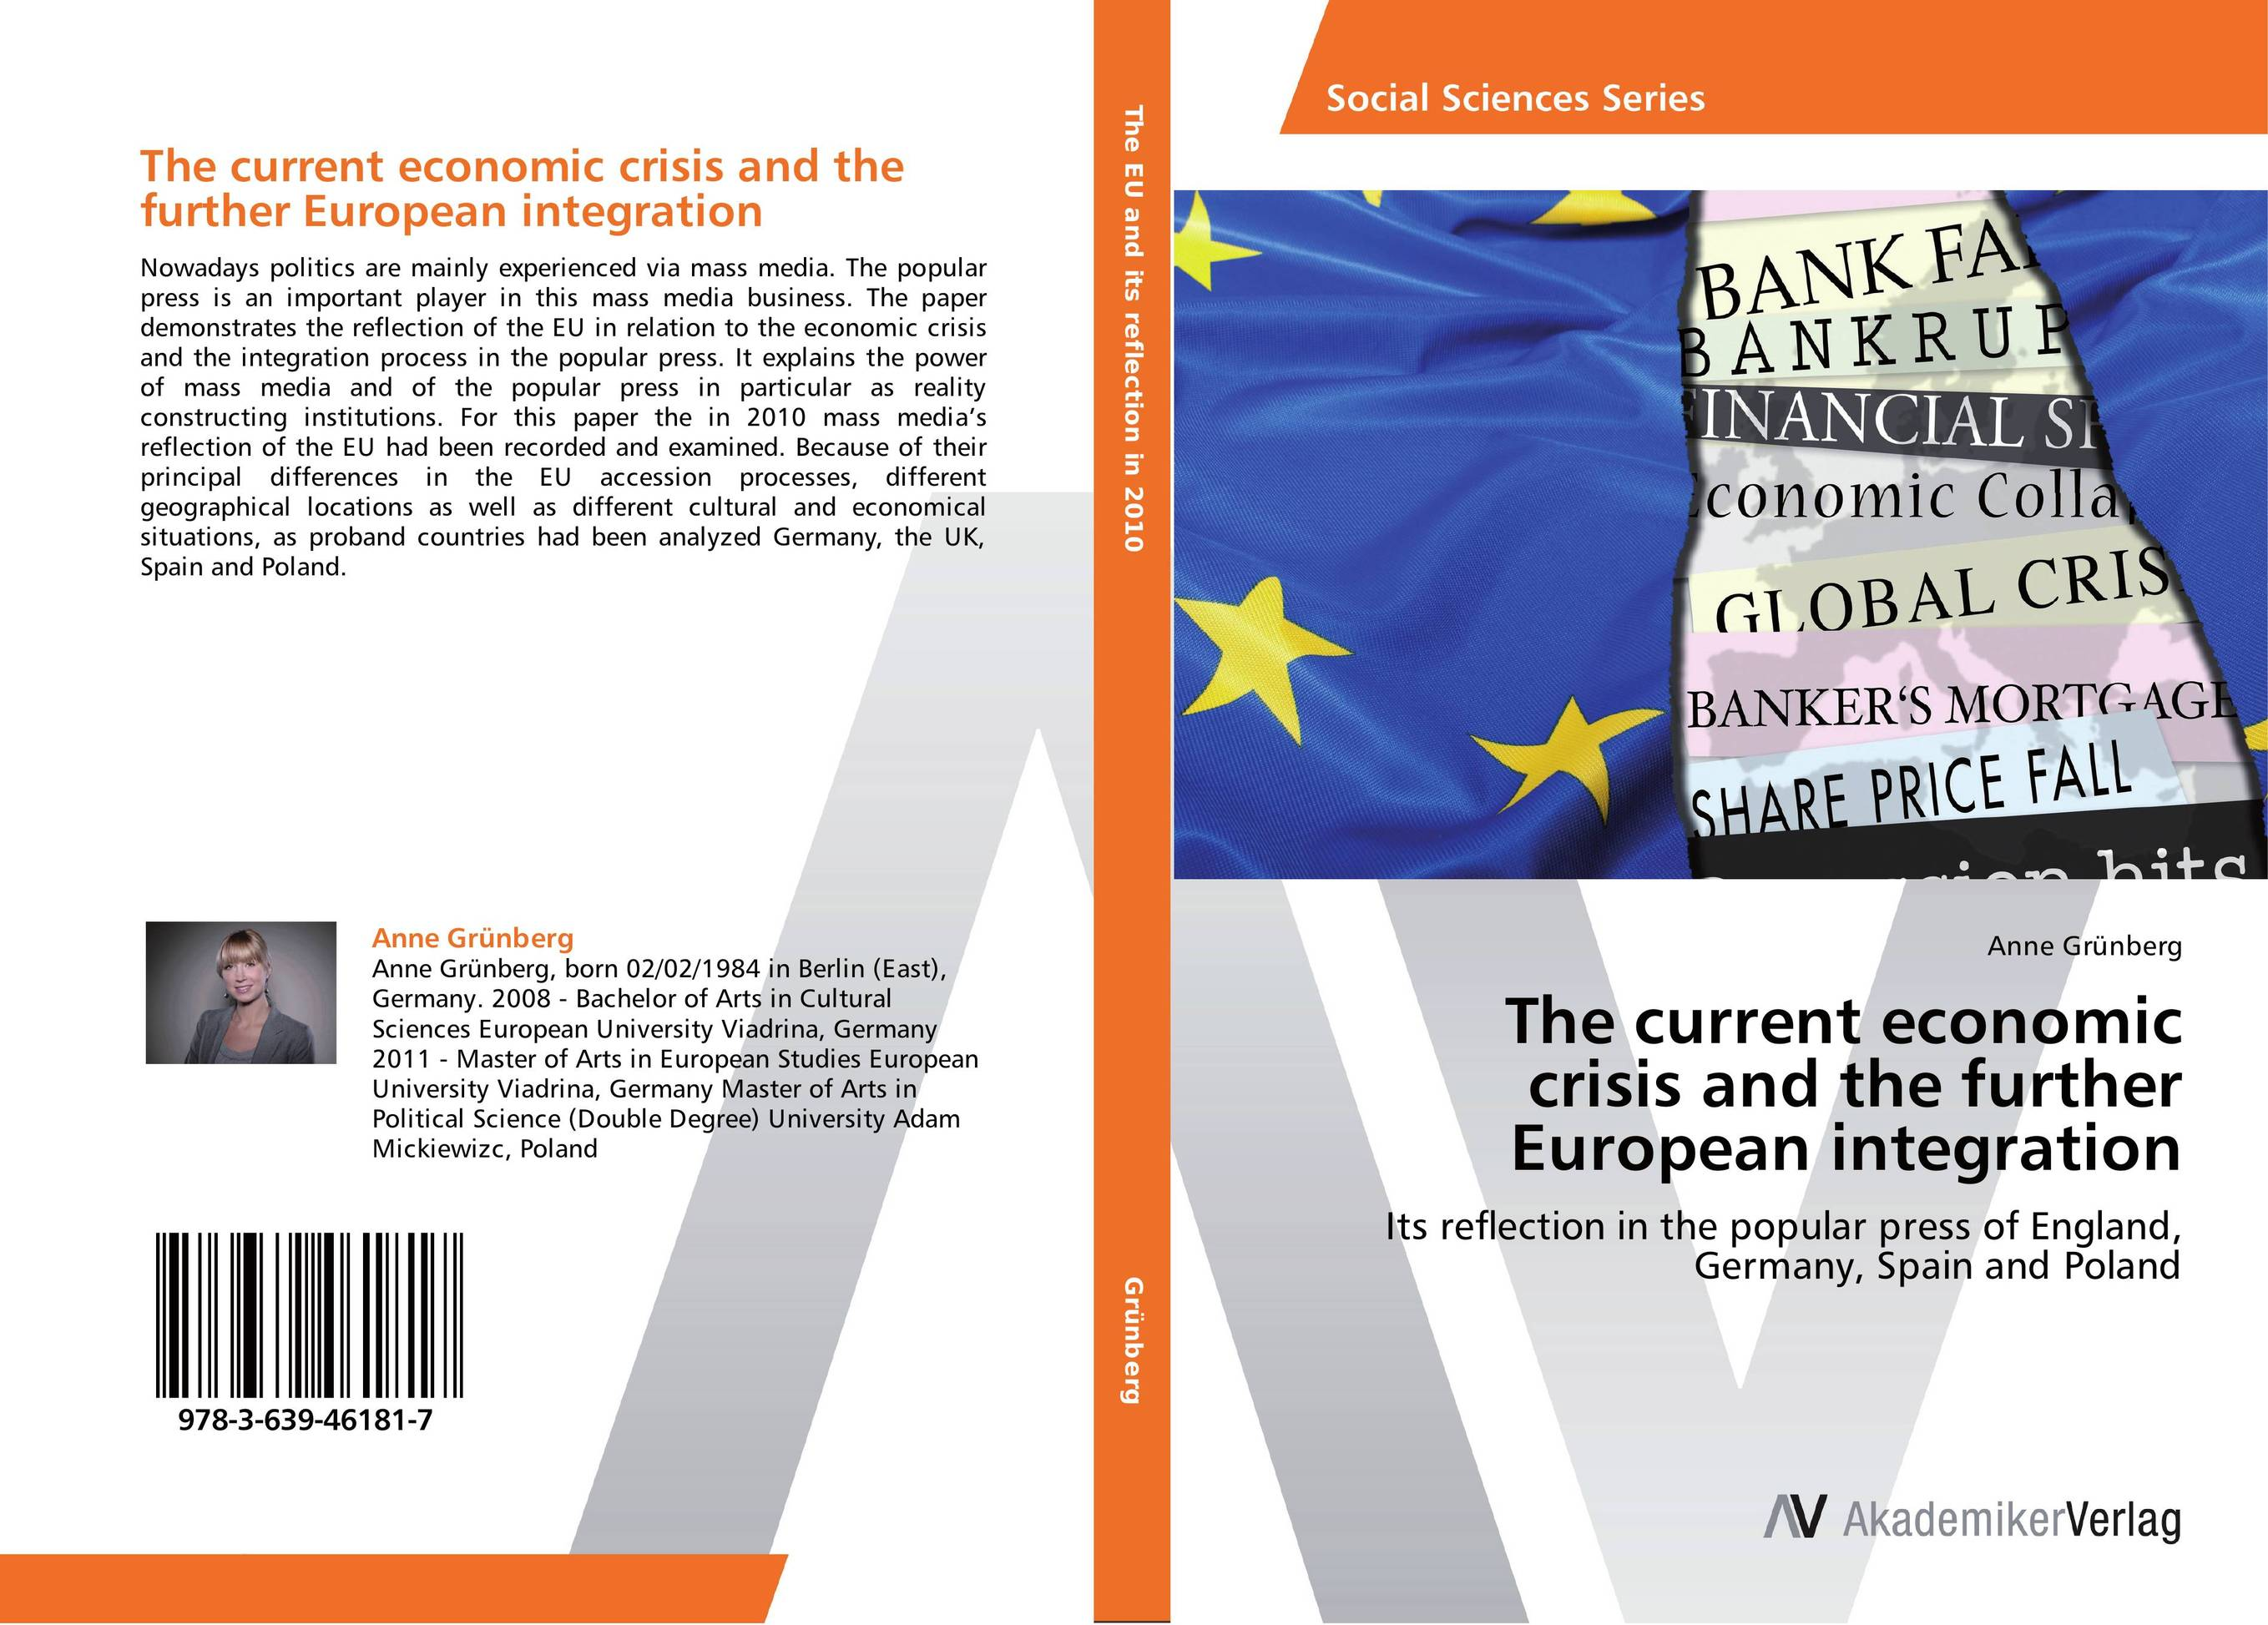 The current economic crisis and the further European integration shakespeare after mass media [9780312294540]